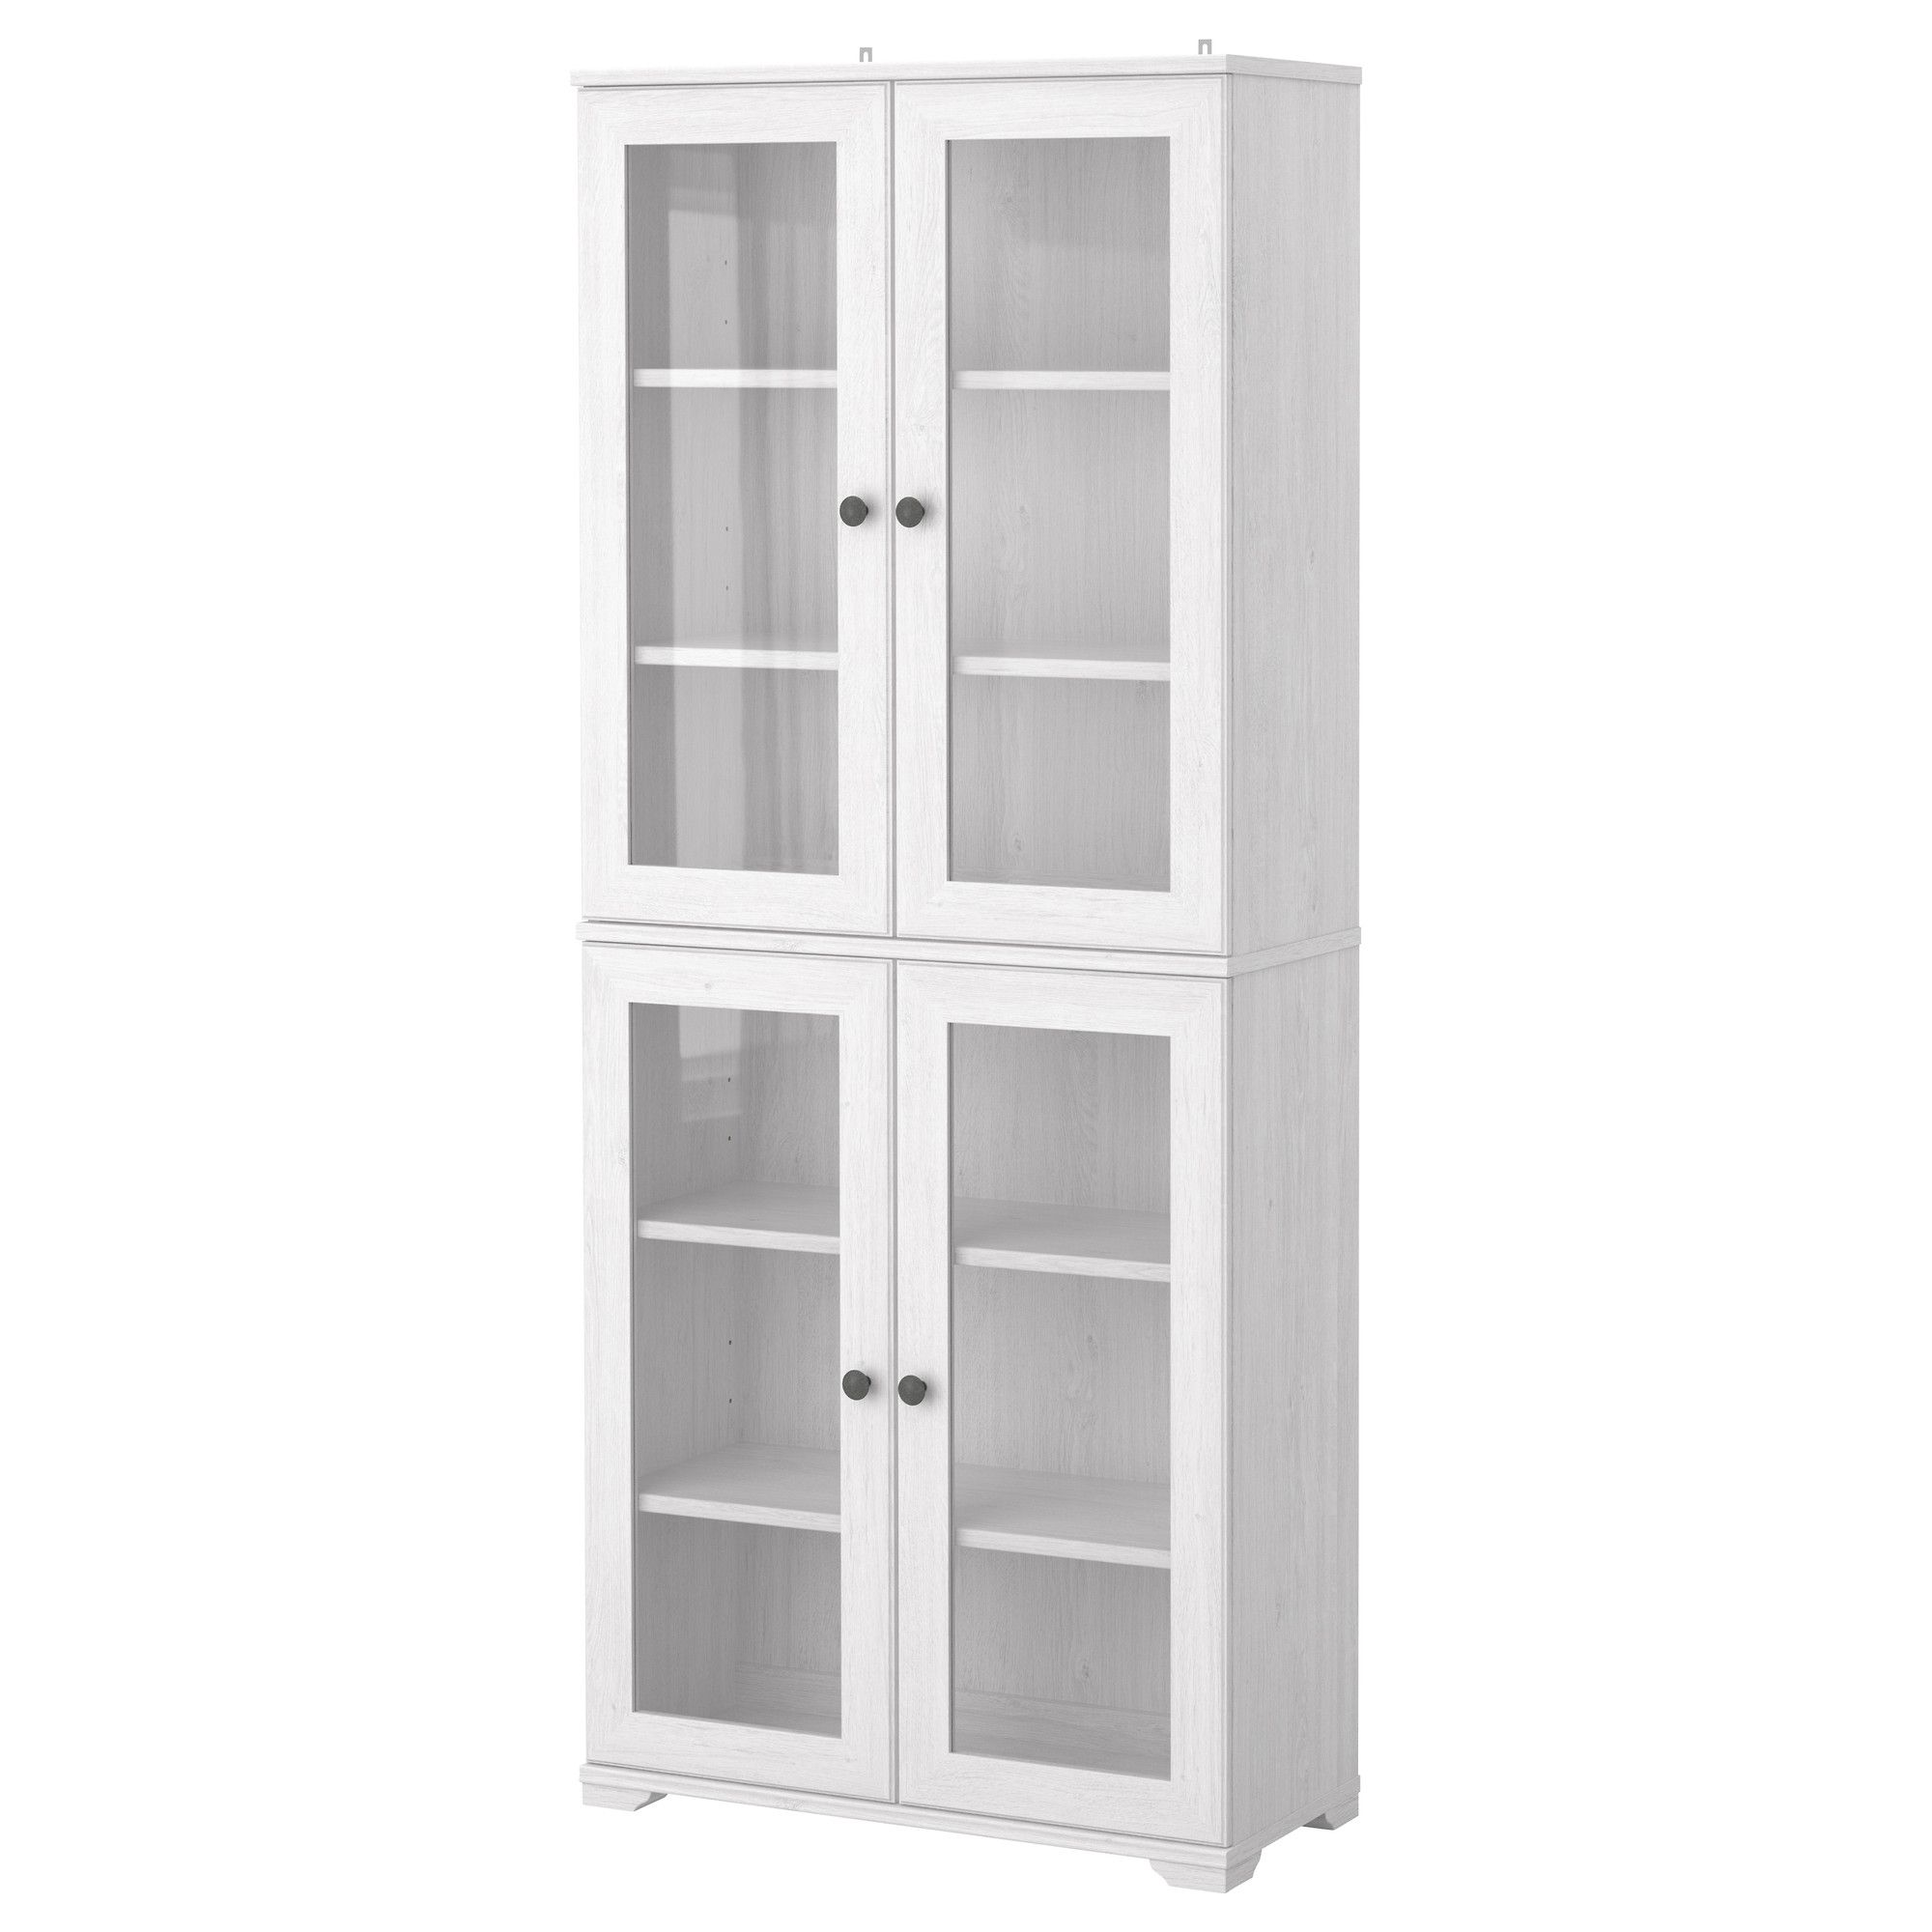 glass door cabinets living room. BORGSJ  Glass door cabinet white IKEA Part of living room TV wall storage 135 as pictured need